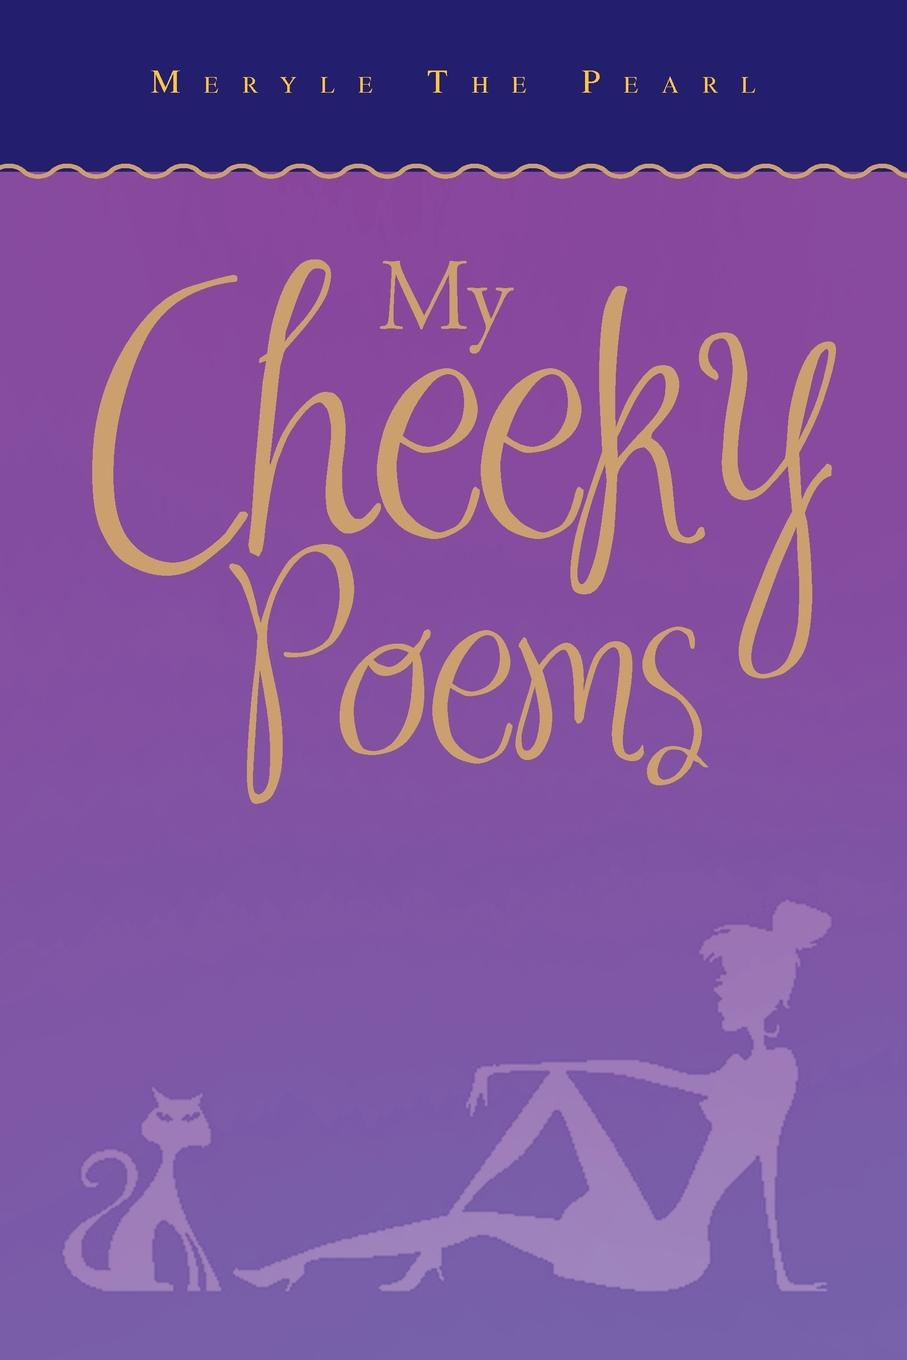 Meryle The Pearl My Cheeky Poems